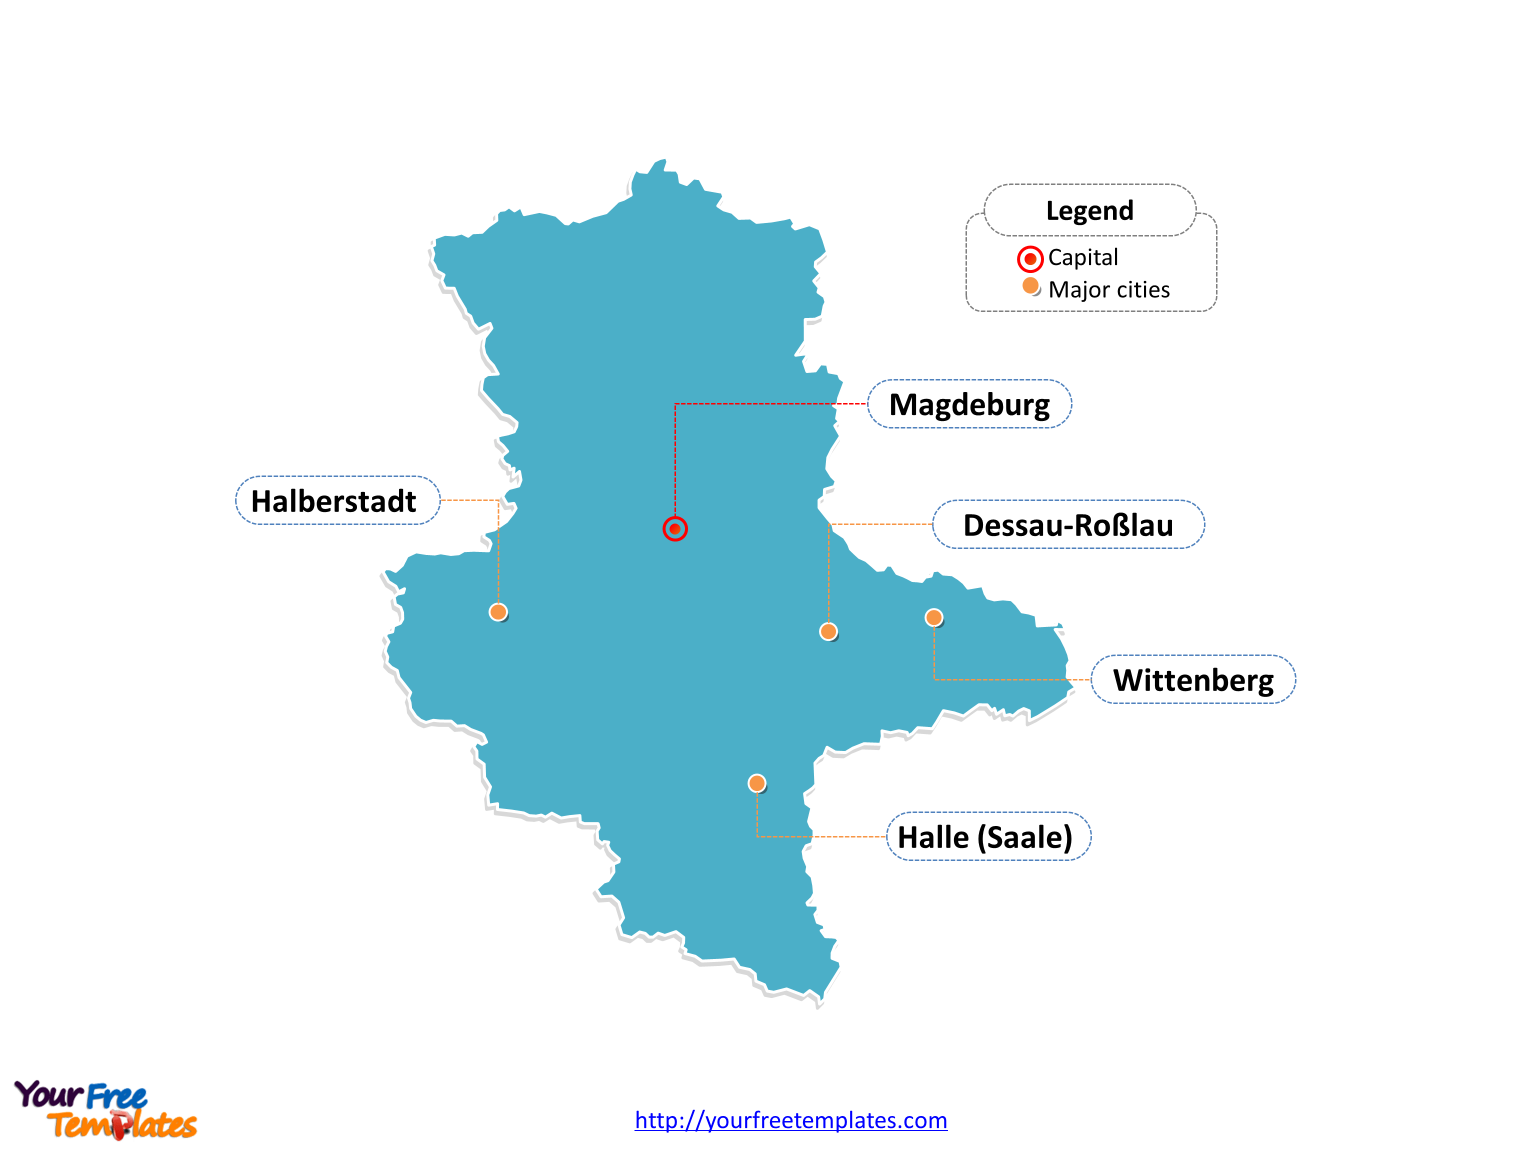 Saxony-Anhalt map labeled with cities